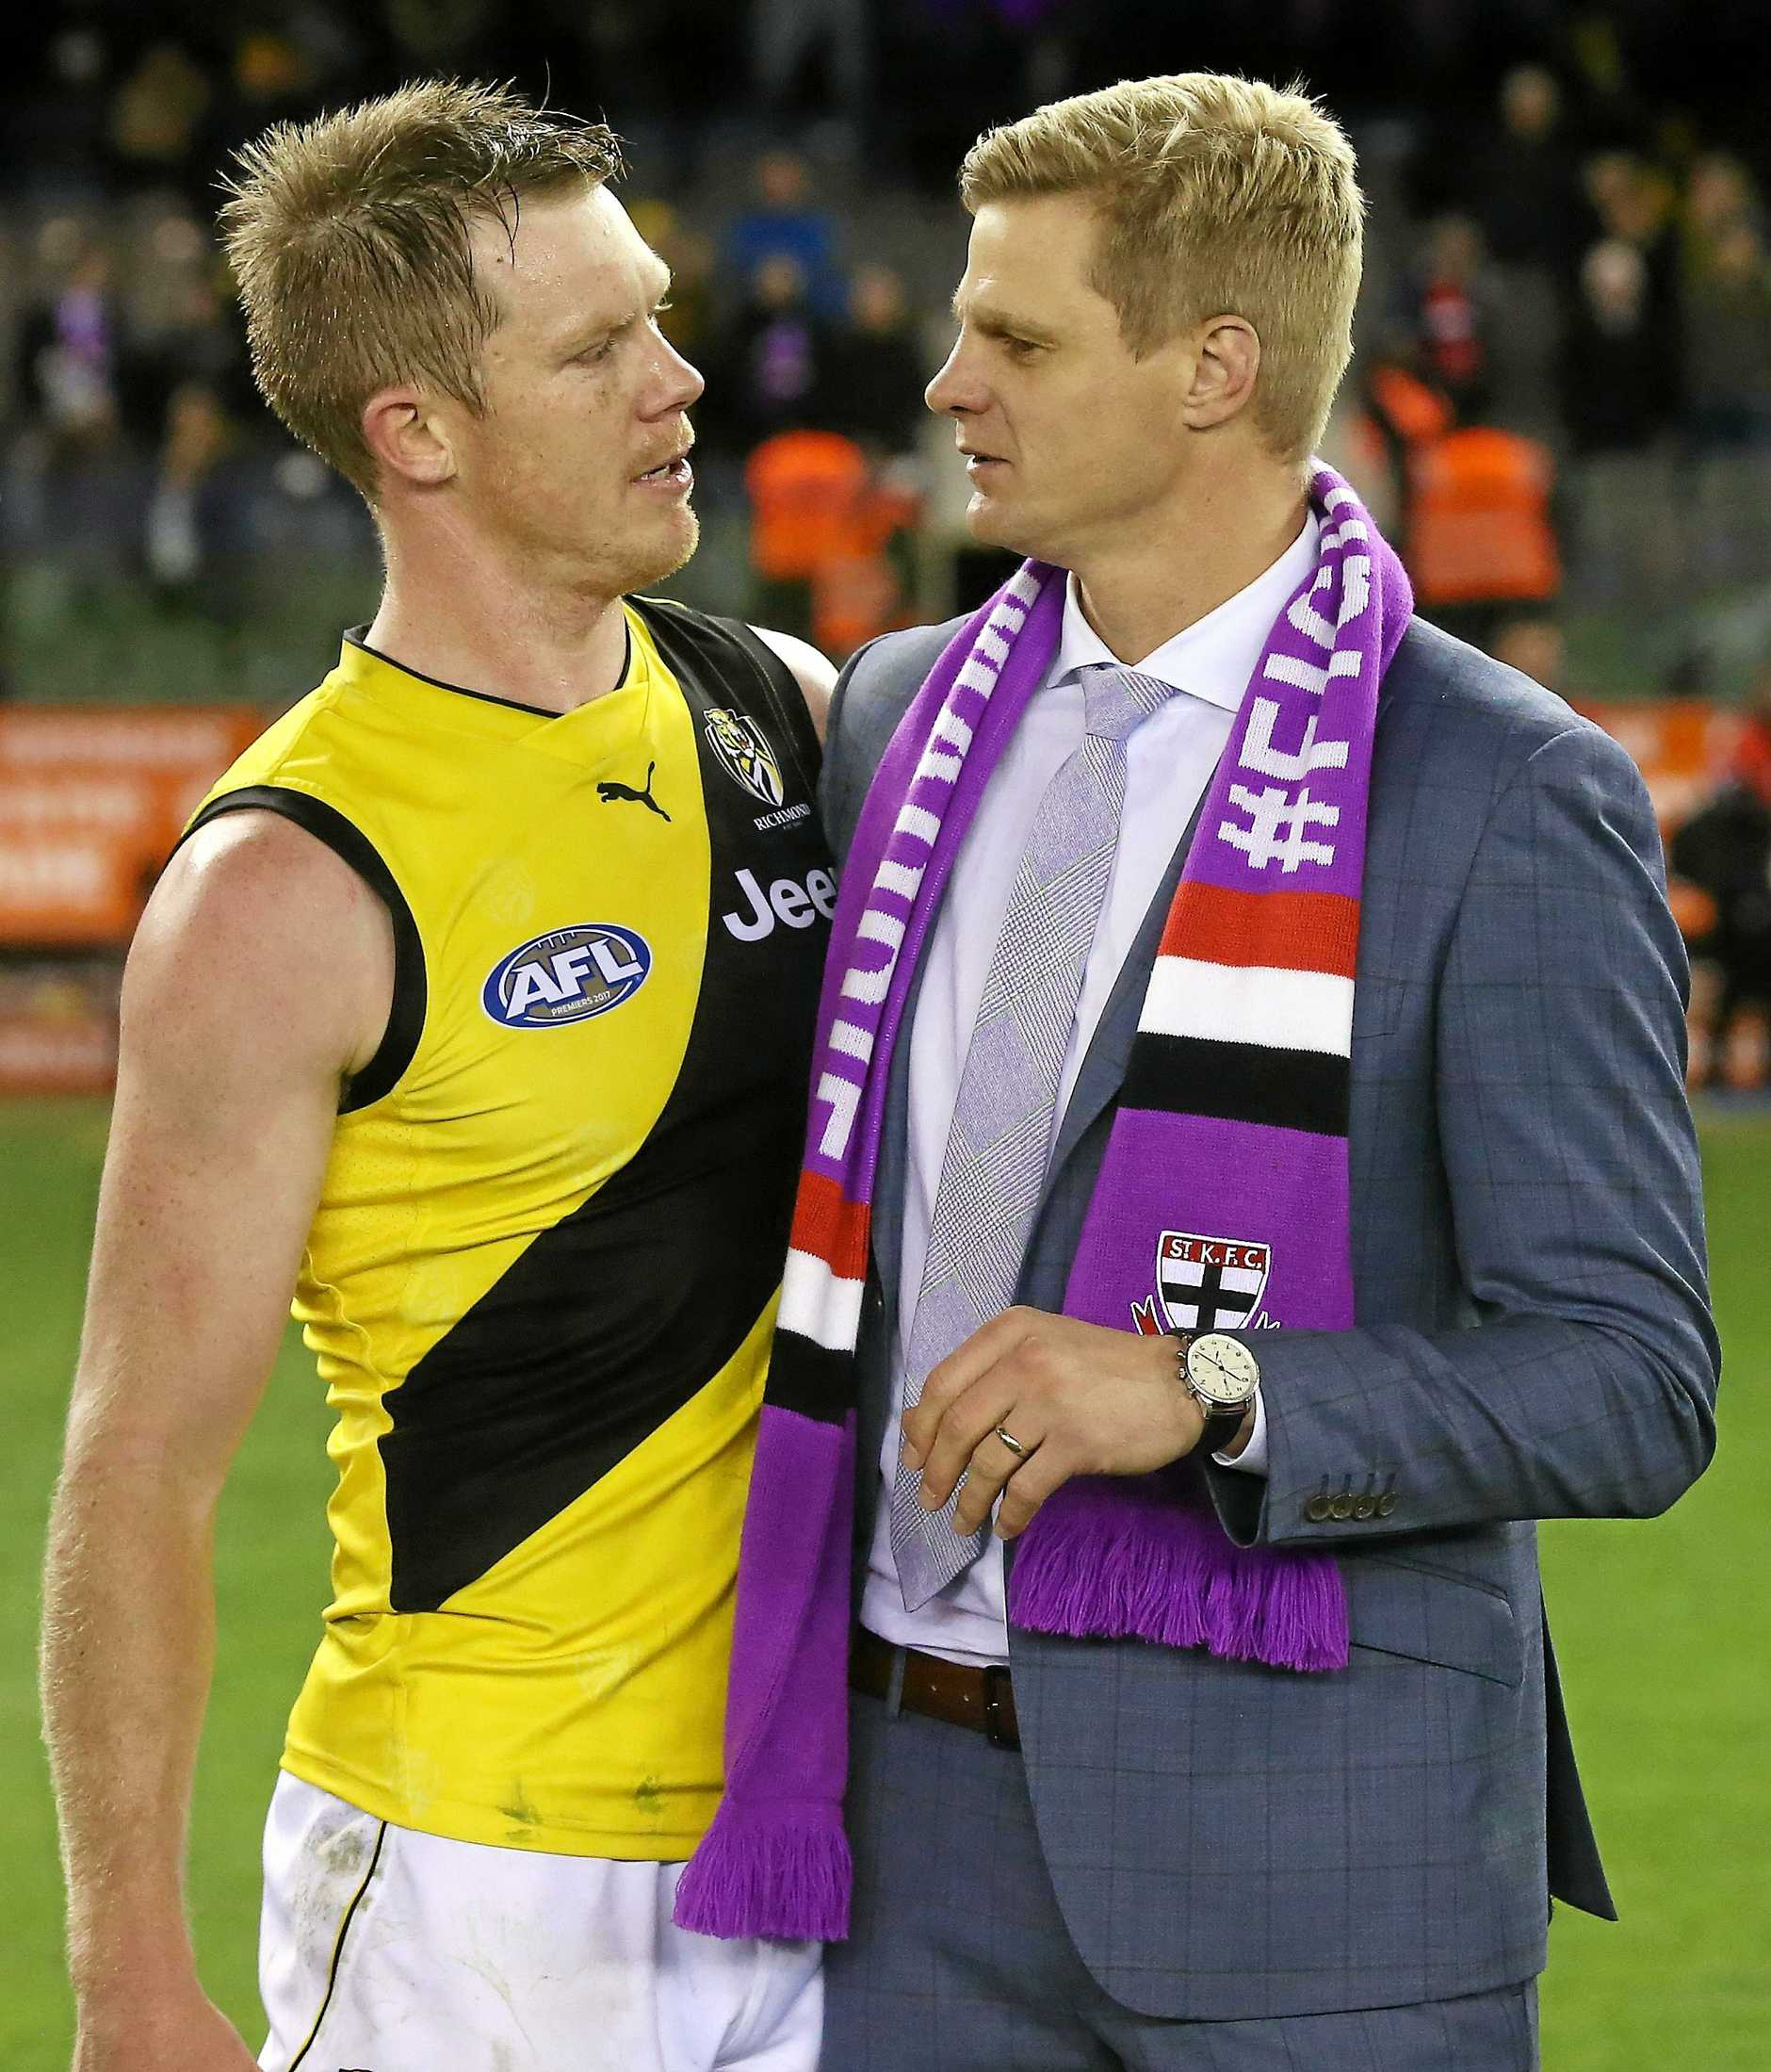 Nick and Jack Riewoldt meet following the Tigers' clash with the Saints earlier this season - Maddie's Match, in honour of Nick's sister who died from a from a rare bone marrow disease in 2015. Pic: Michael Klein